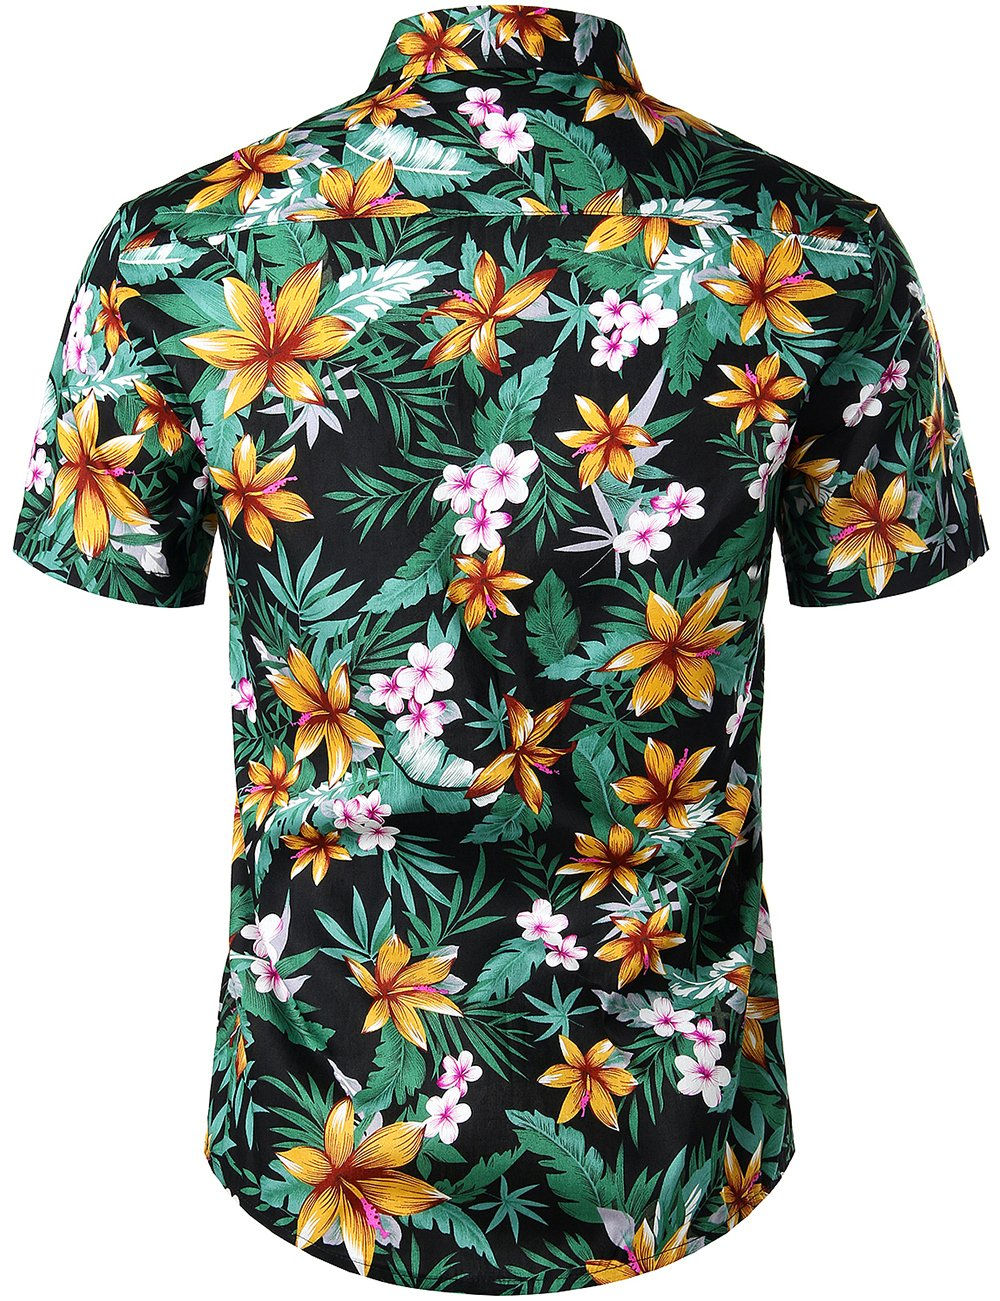 JOGAL Men's Flower Casual Button Down Short Sleeve Hawaiian Shirt(Black Lily)